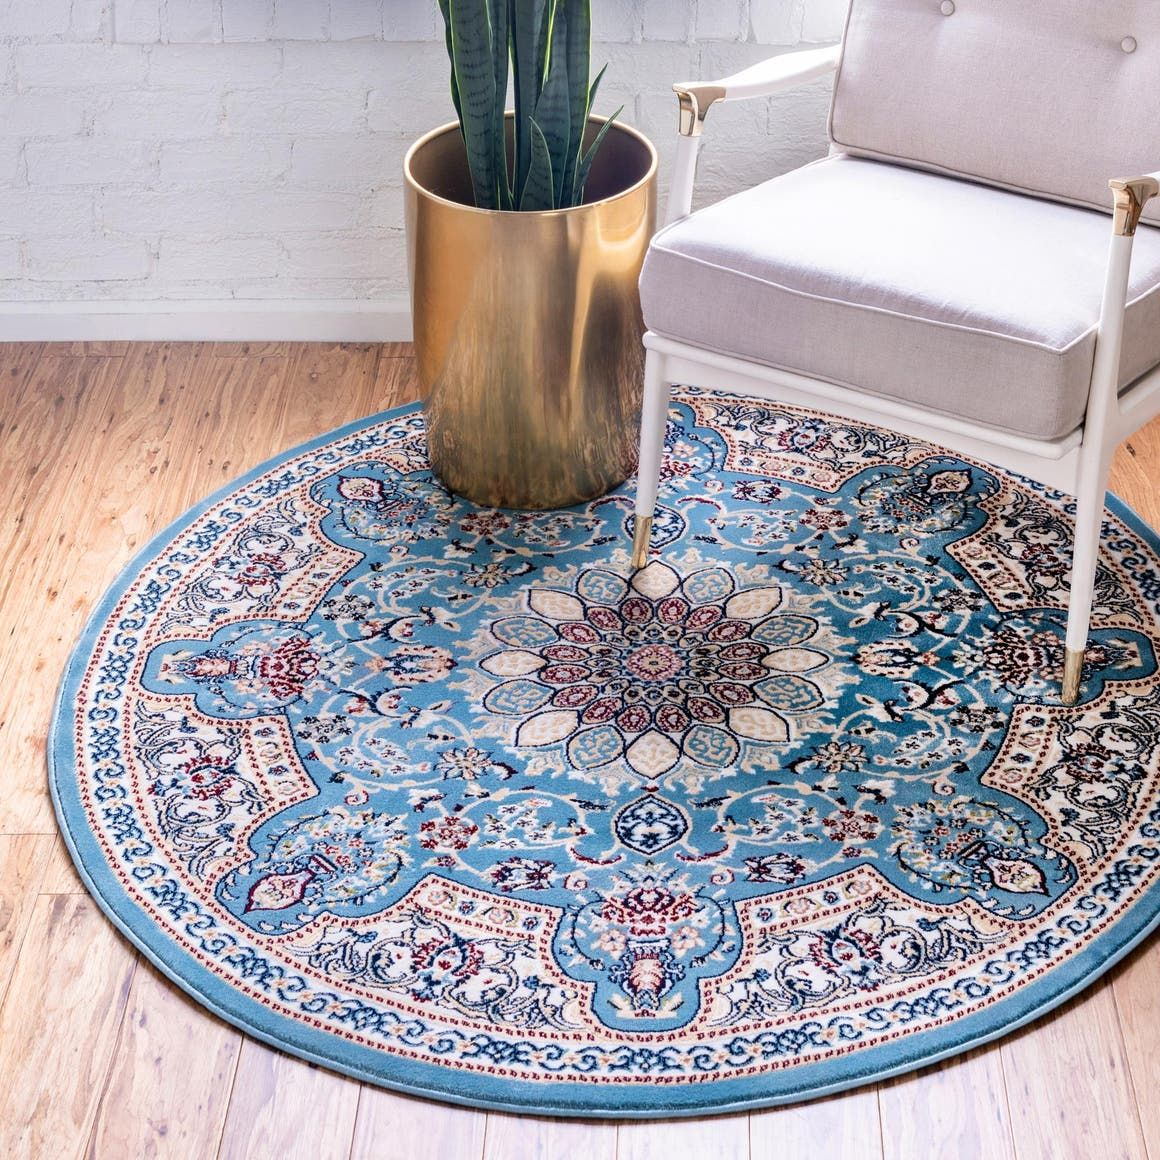 Rabia Blue 3 Ft Round Area Rug In 2020 Rugs Area Rugs Round